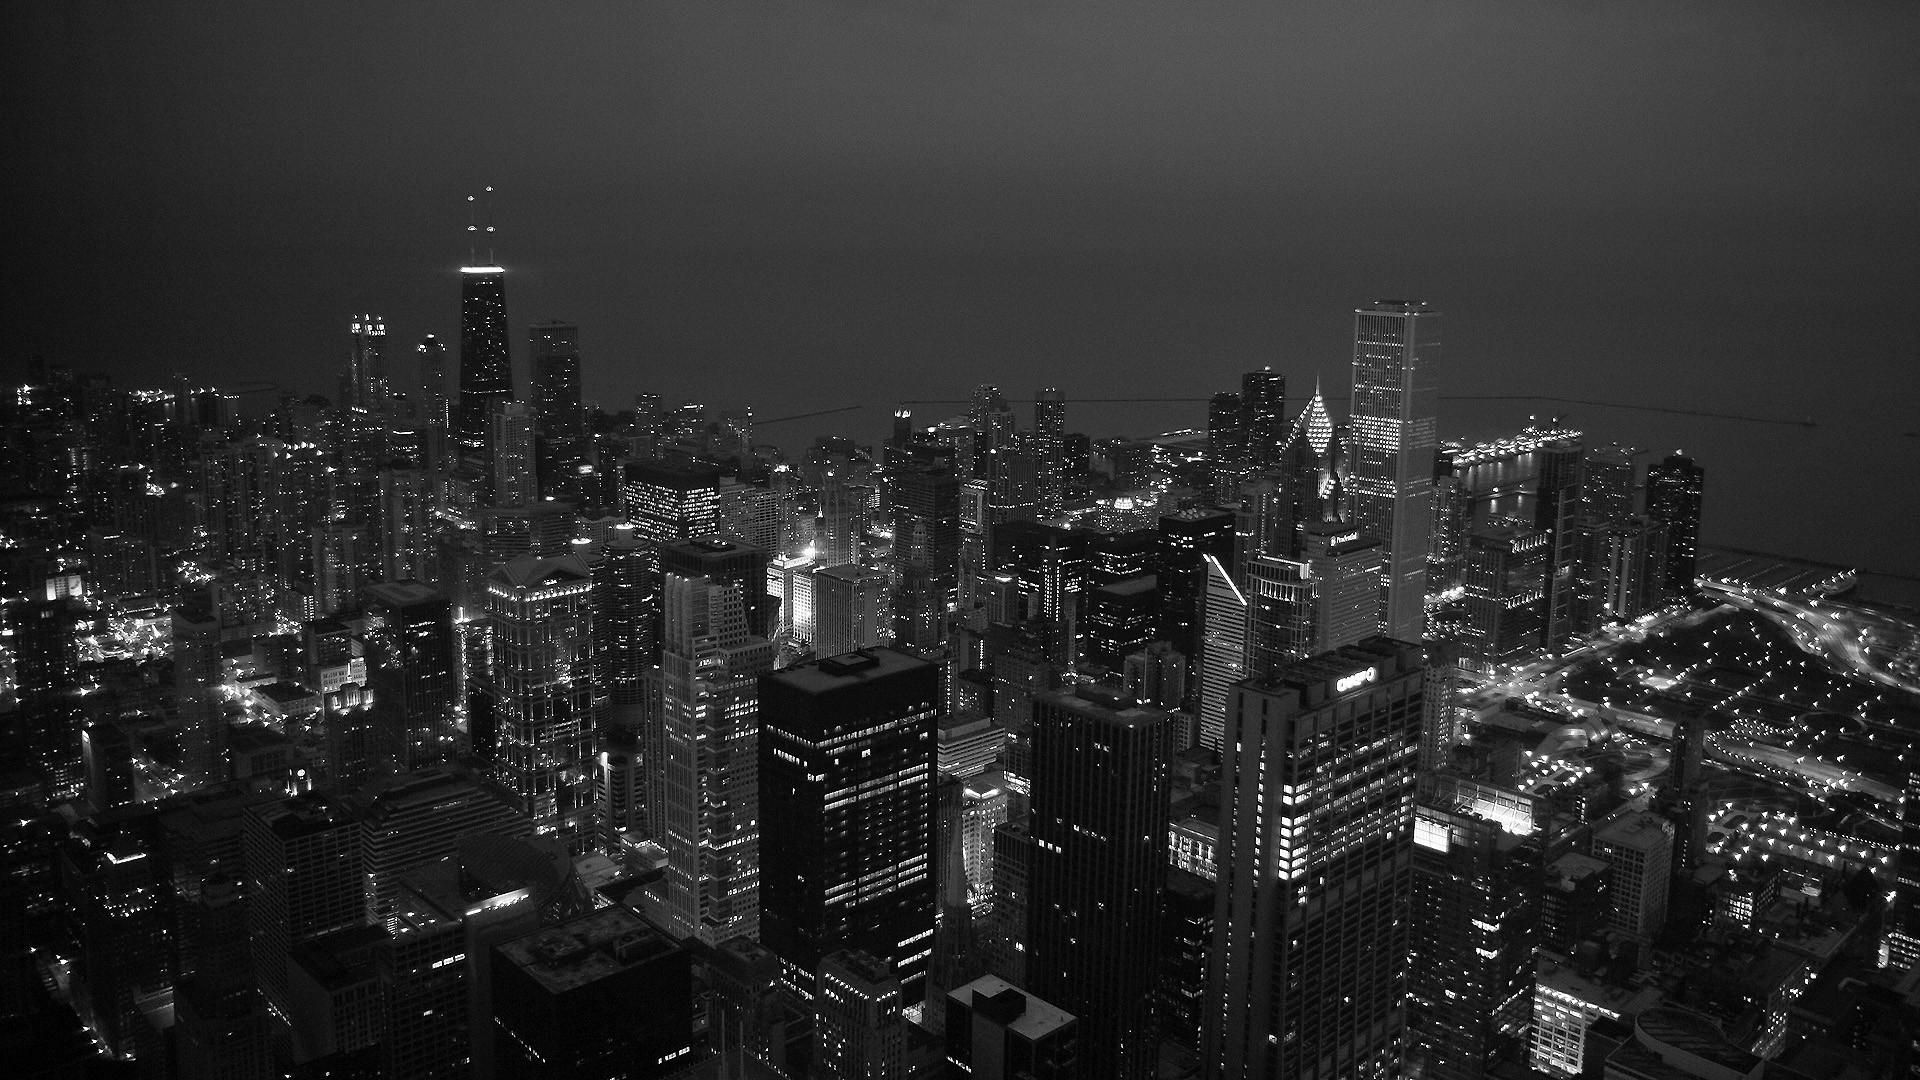 Black And White Photography Black And White Photography Hd Wallpaper New York City Black An Black And White Wallpaper City Wallpaper Black And White City